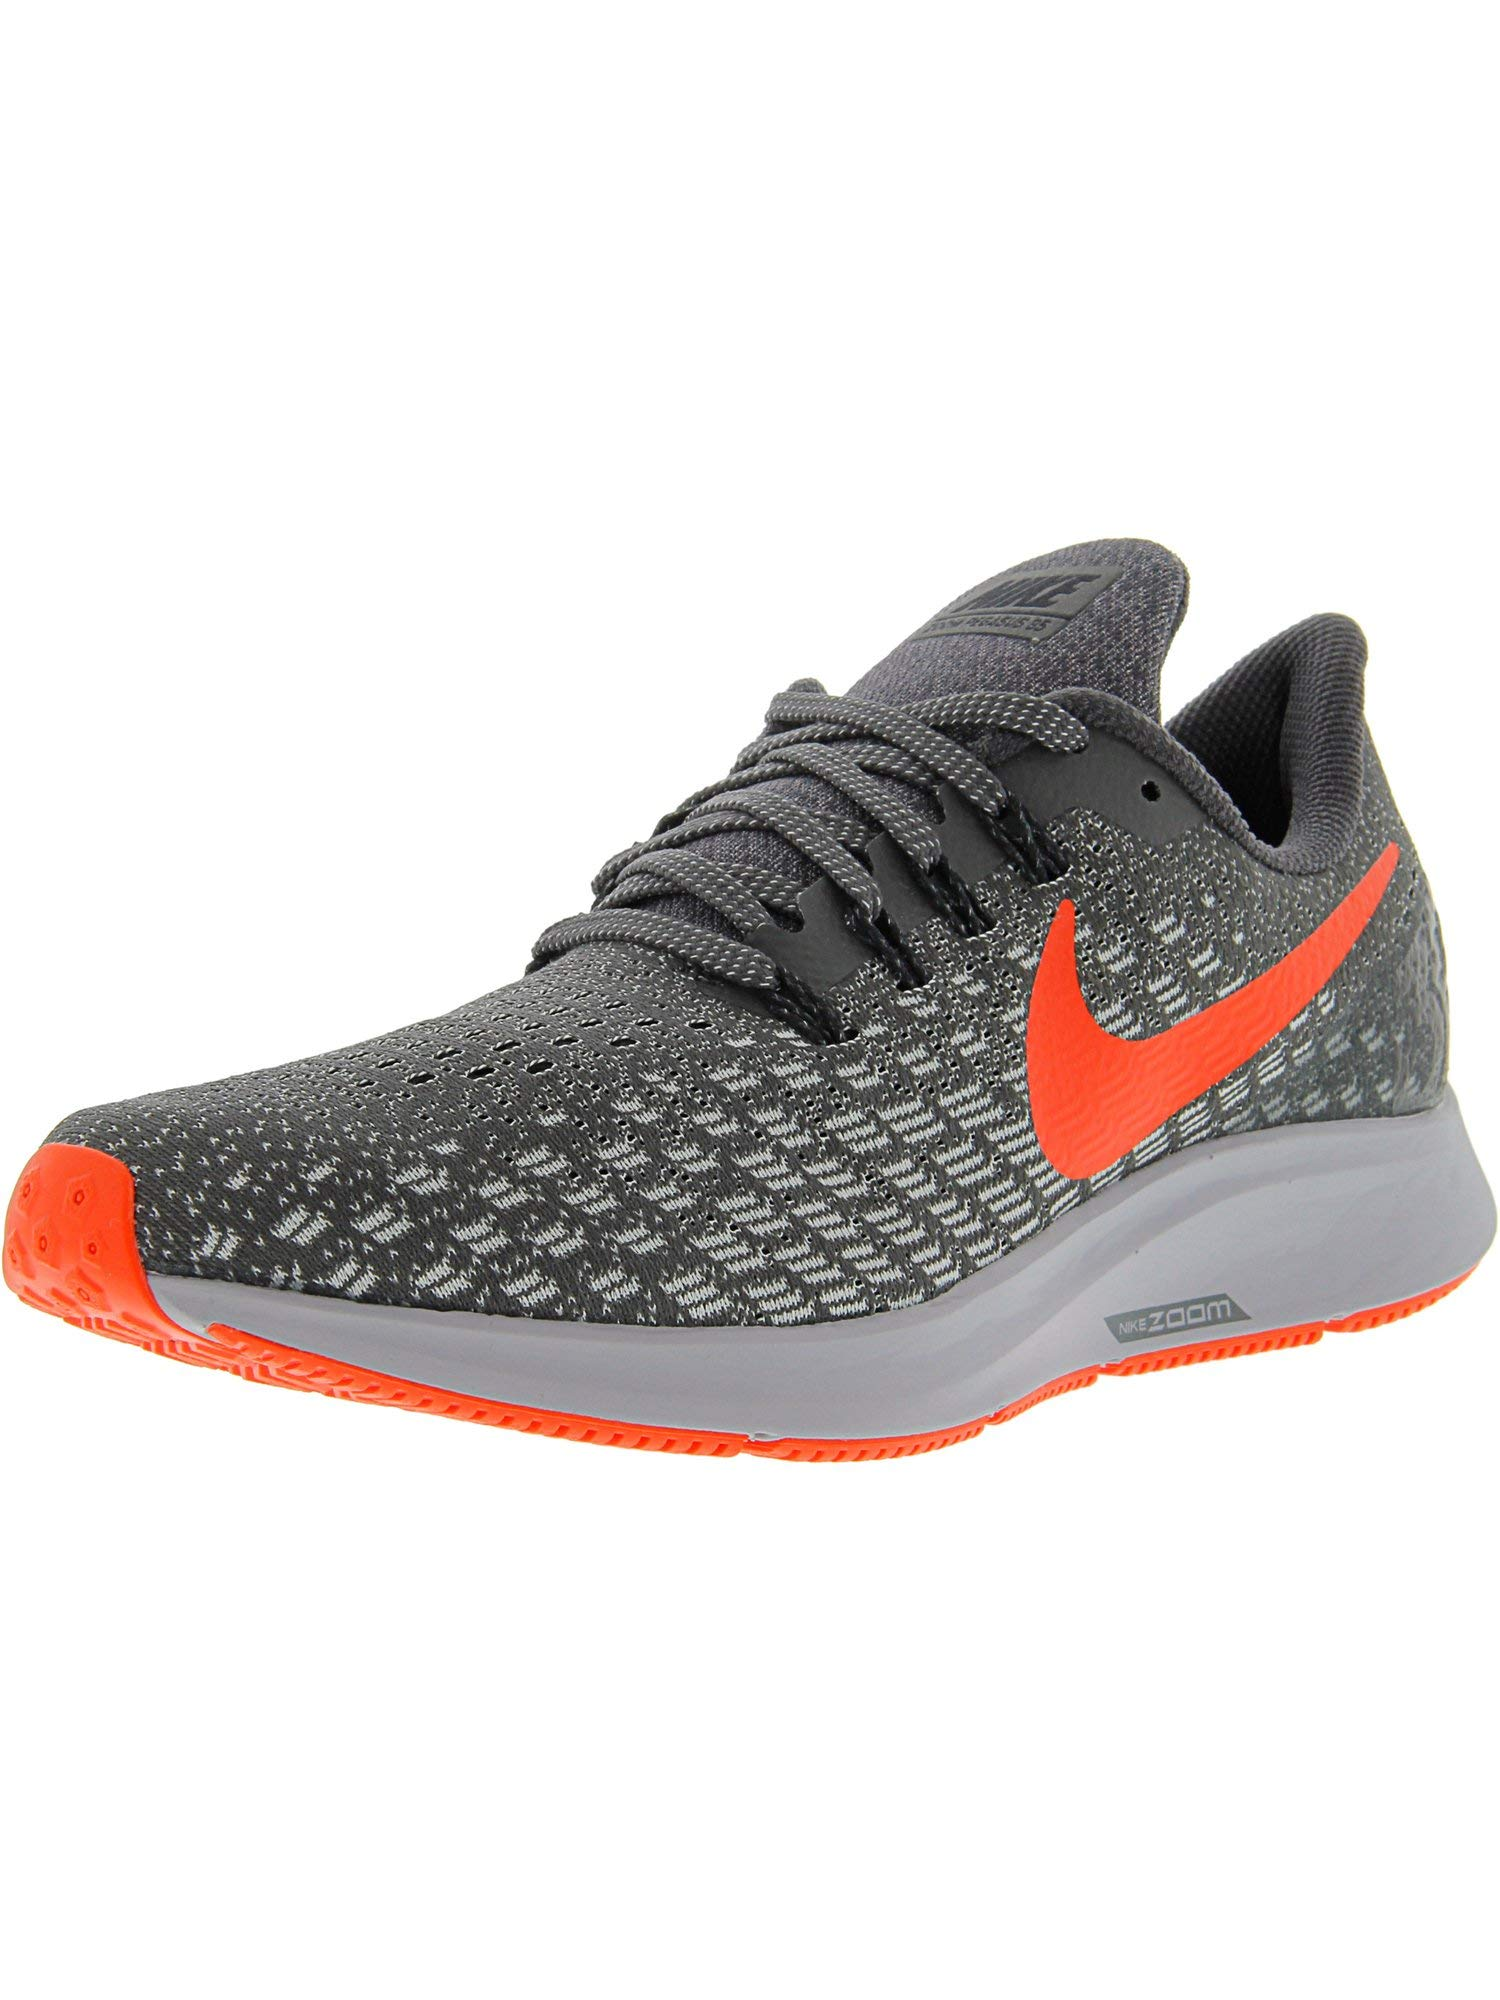 69bbe023c0a Galleon - Nike Men s Air Zoom Pegasus 35 Thunder Grey Bright Crimson Ankle- High Mesh Running Shoe - 12.5M